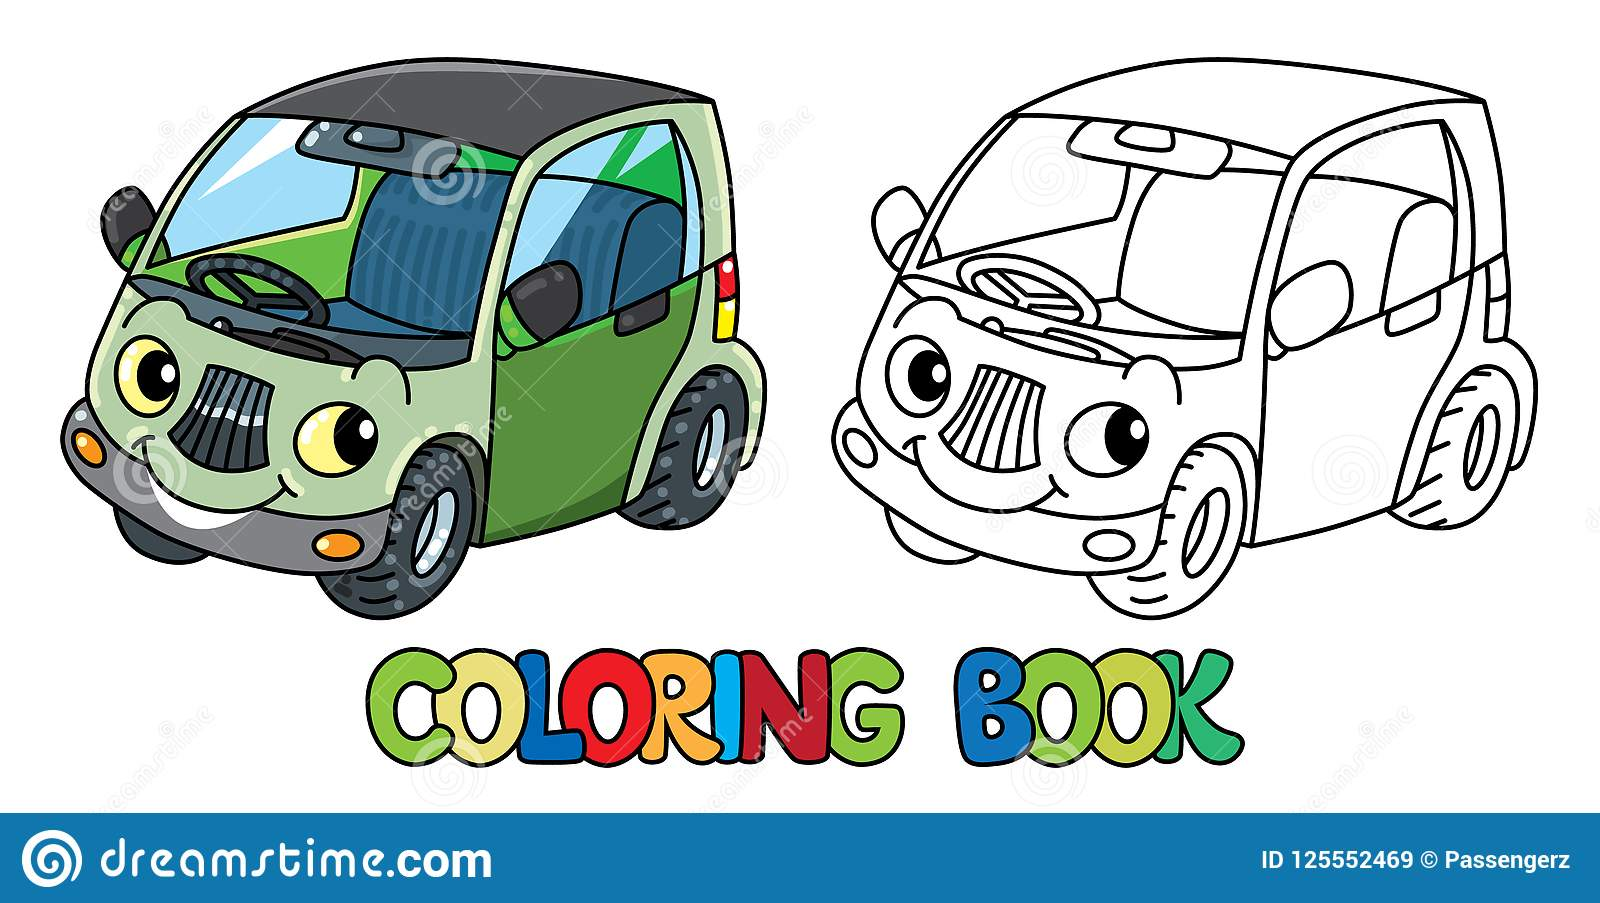 Funny Small Car With Eyes Coloring Book Stock Vector Illustration